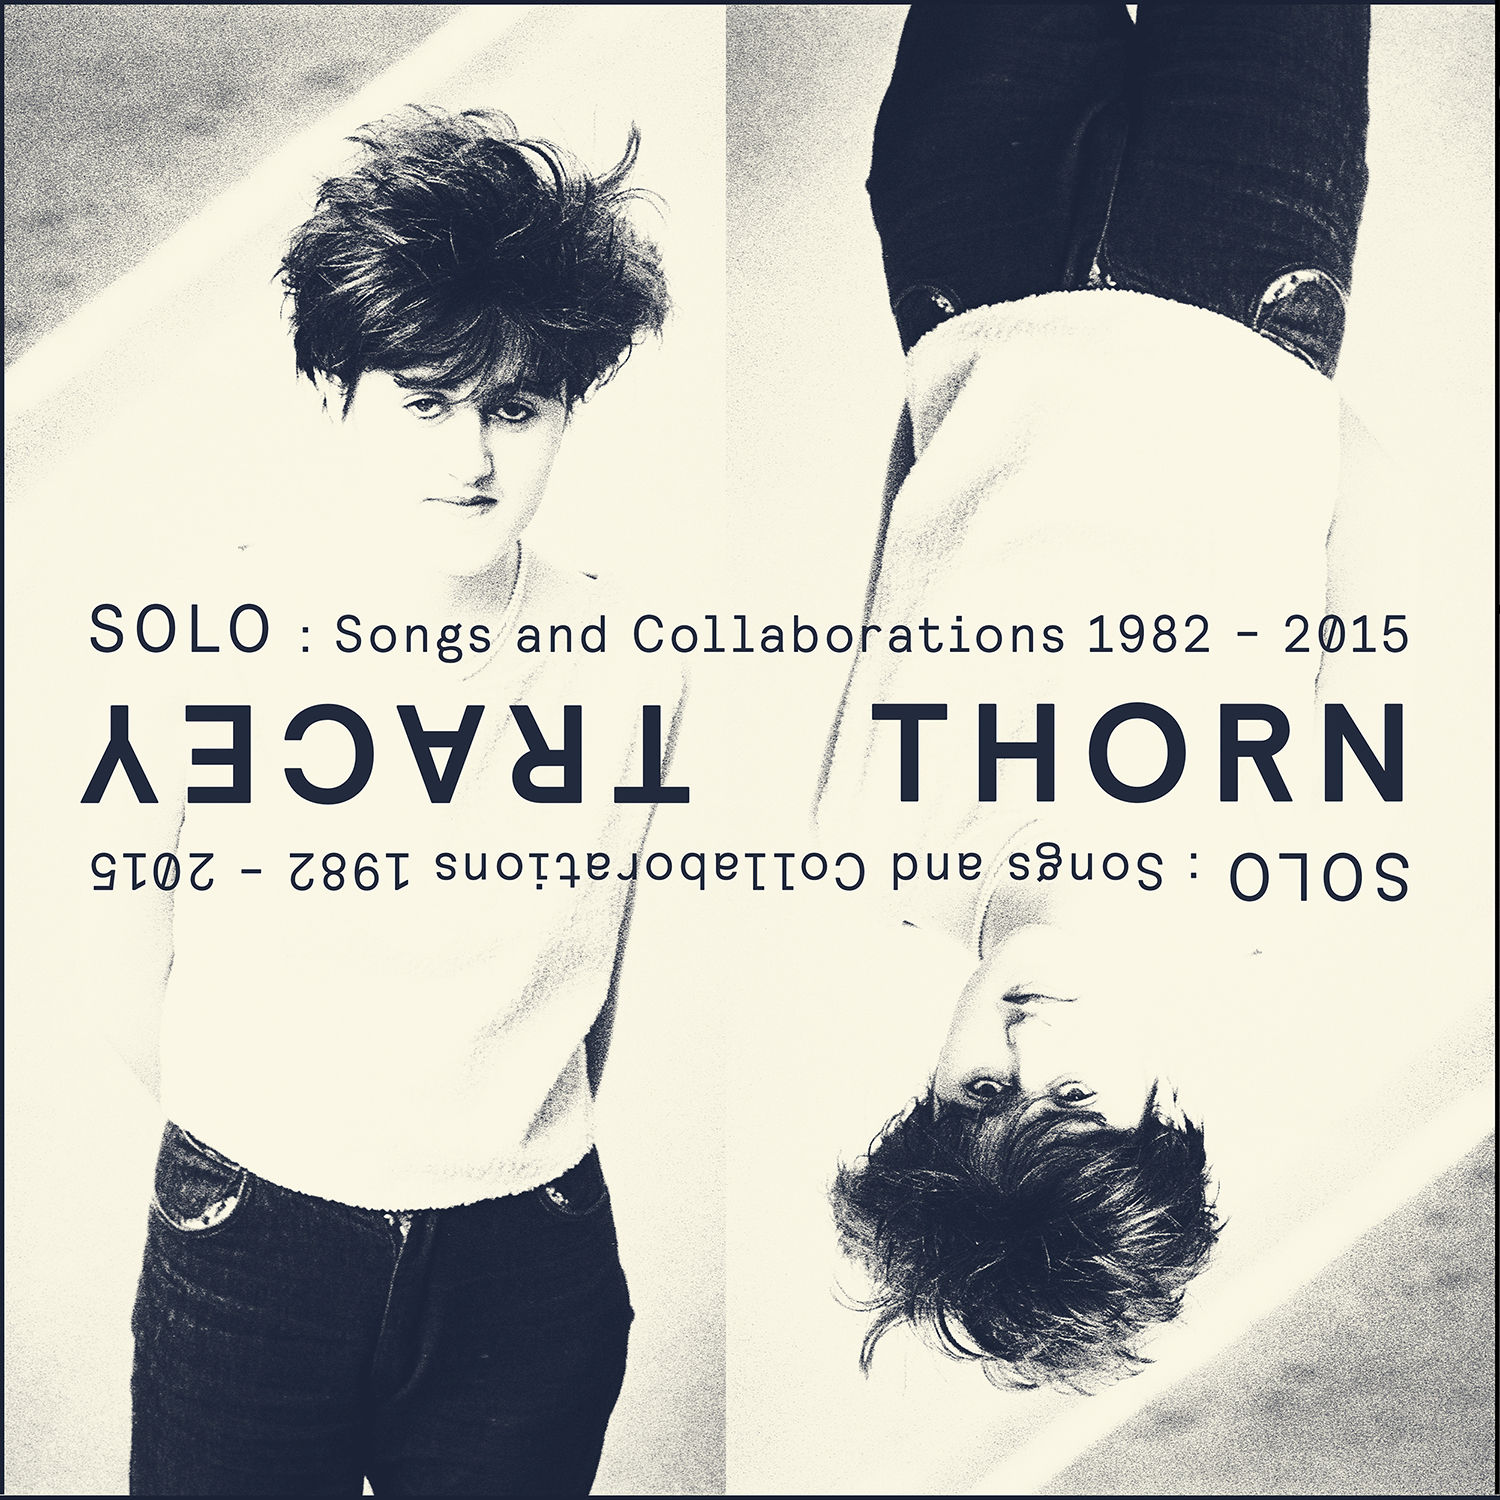 Christian thorn solo